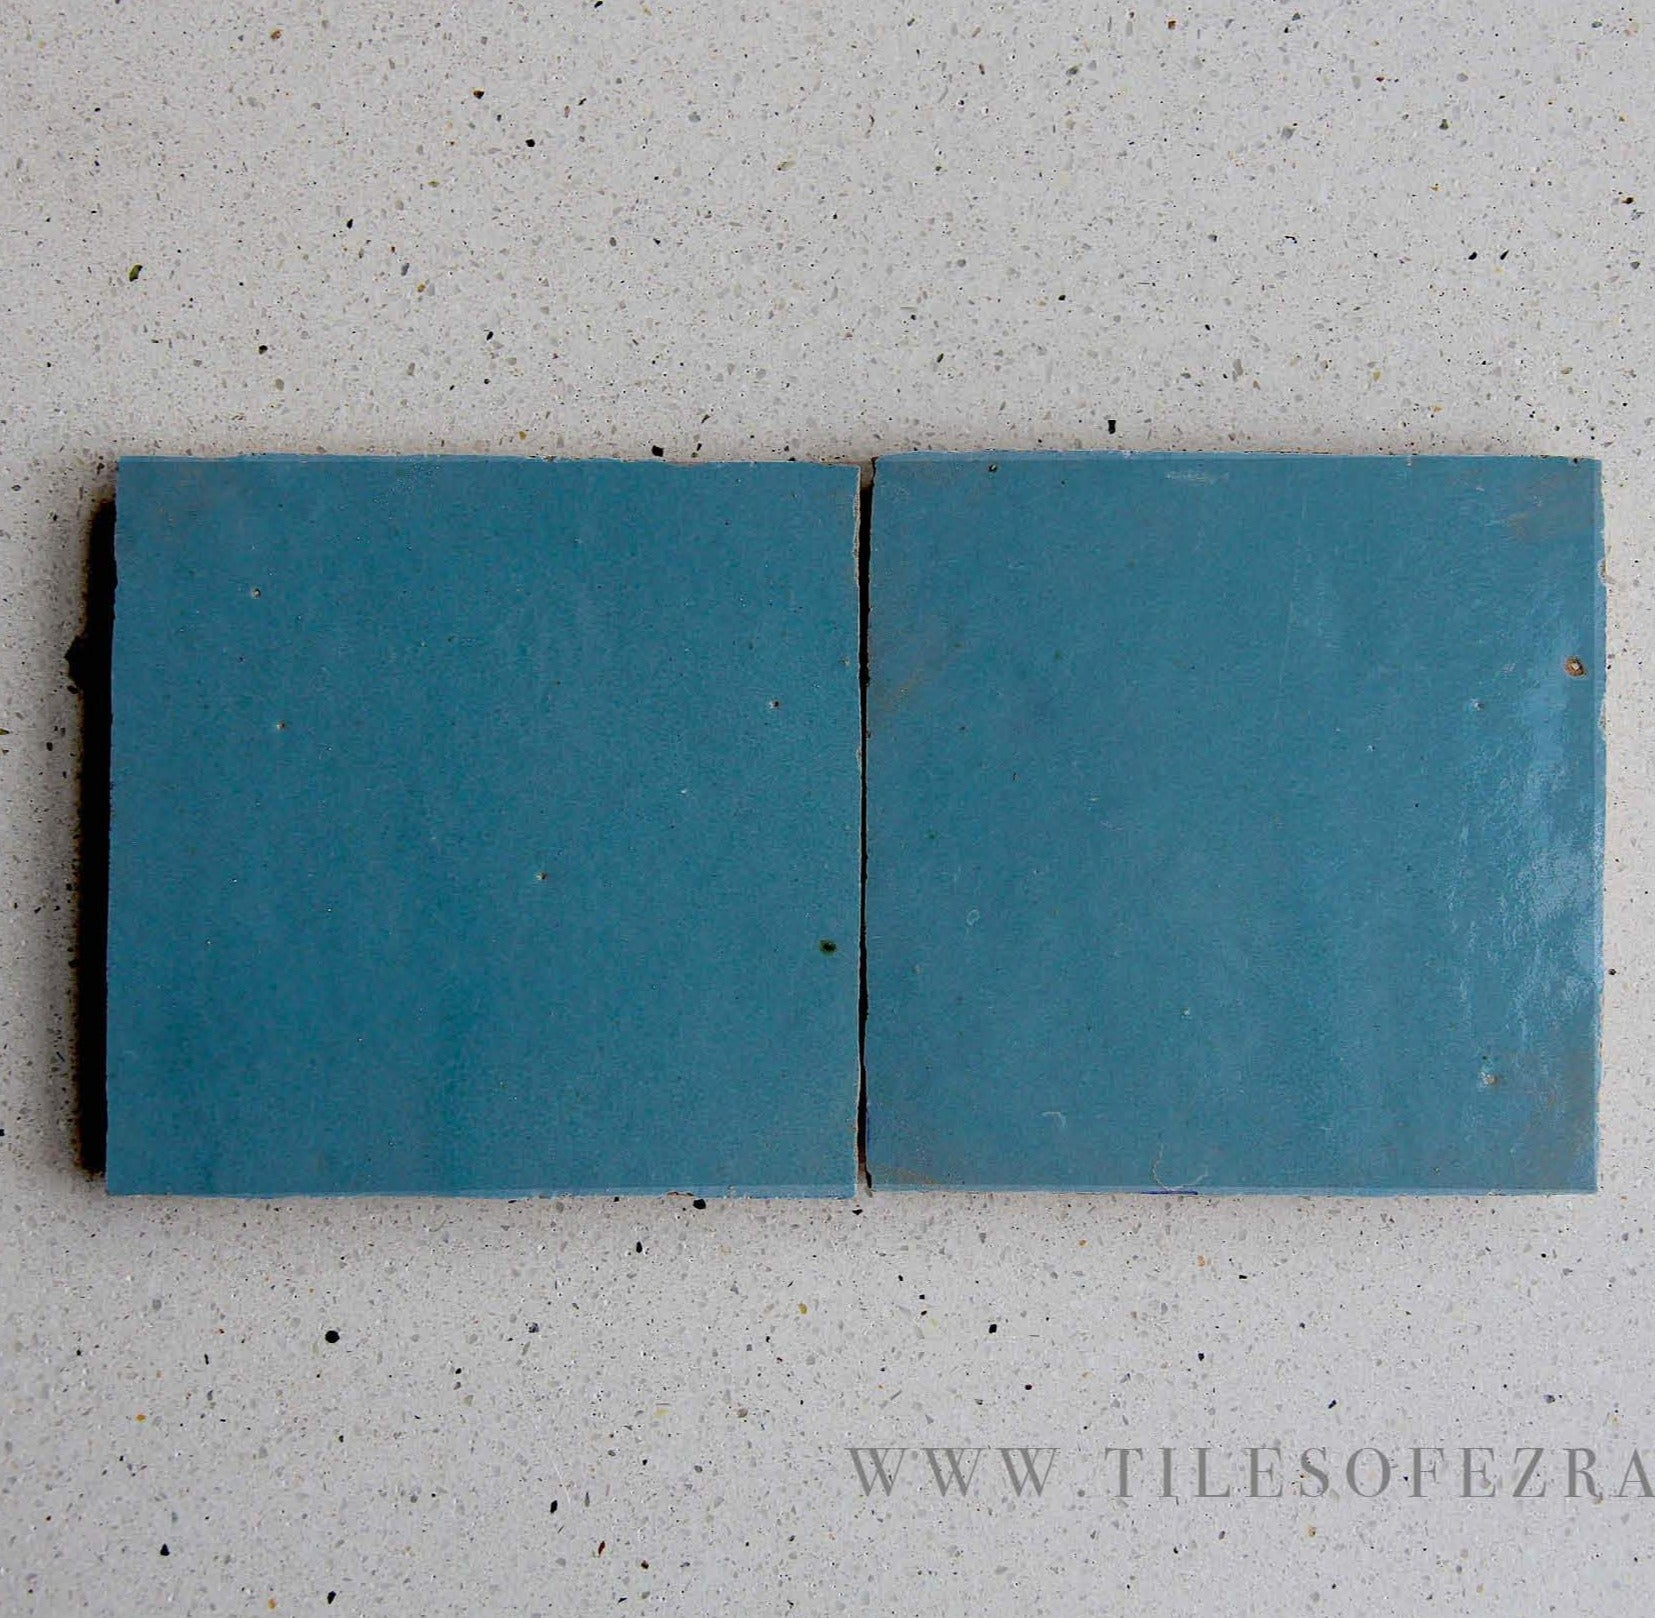 Teal Individual Sample Tile